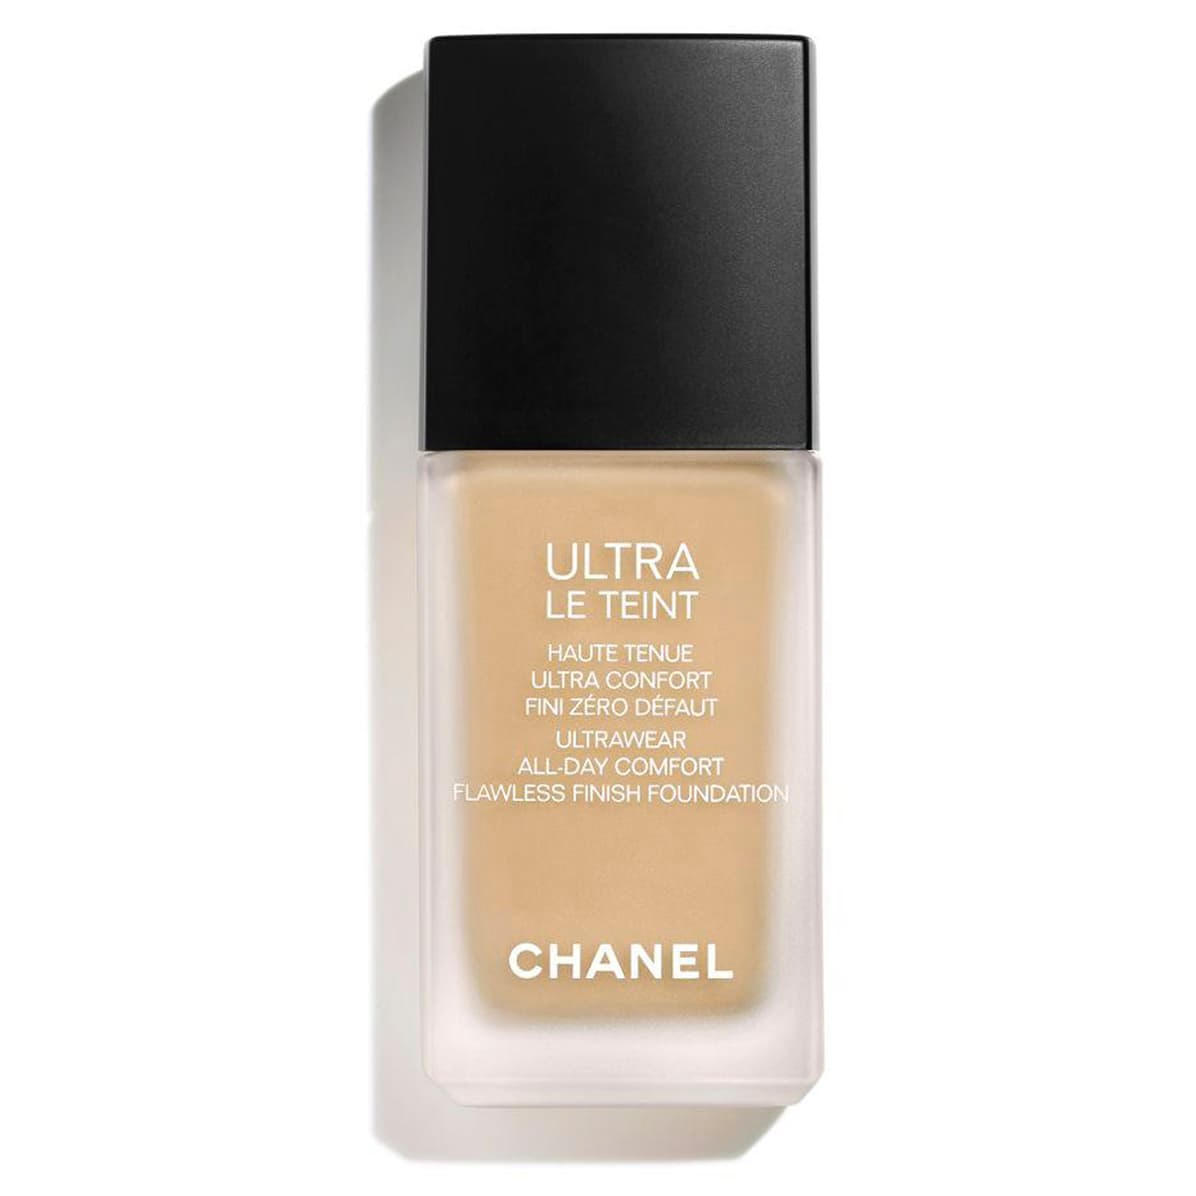 Chanel Ultra Le Teint Ultrawear Foundation BD51